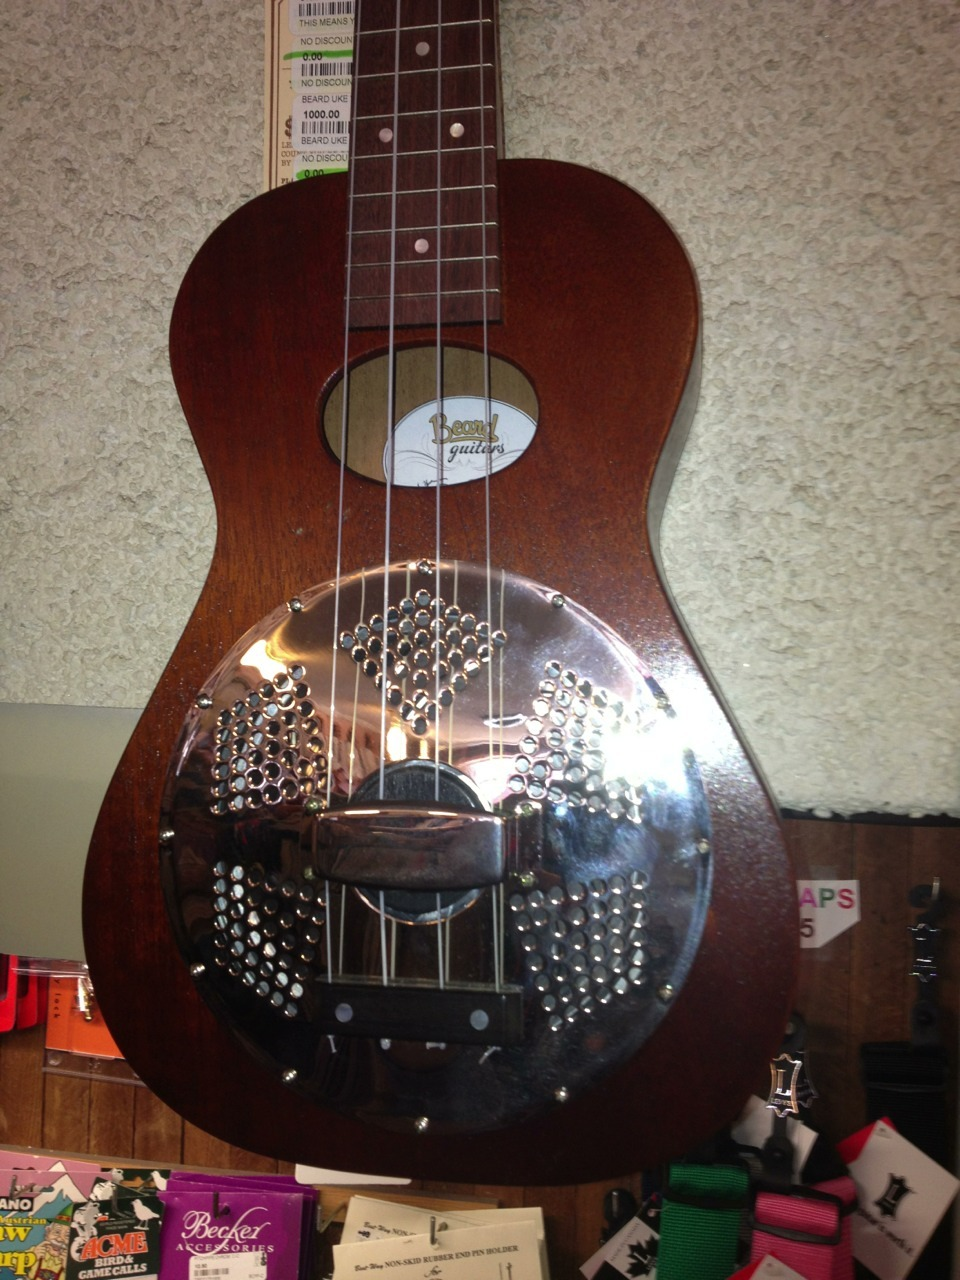 Beard Uke New w/Case Price: $1000.00